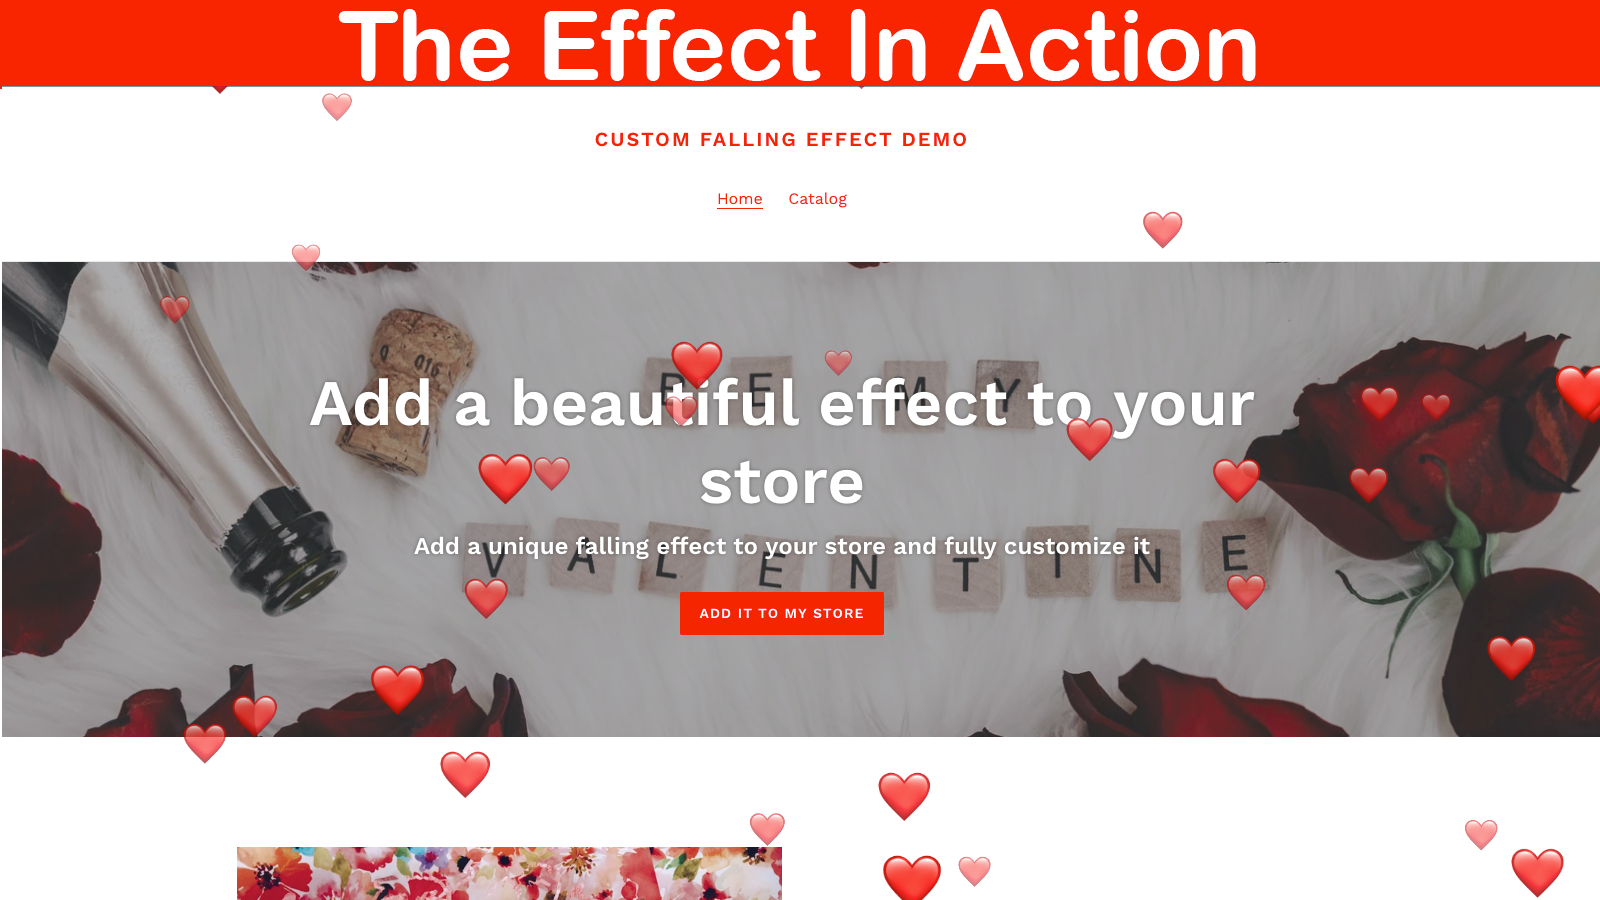 The falling effect can work in the index page only or store-wide